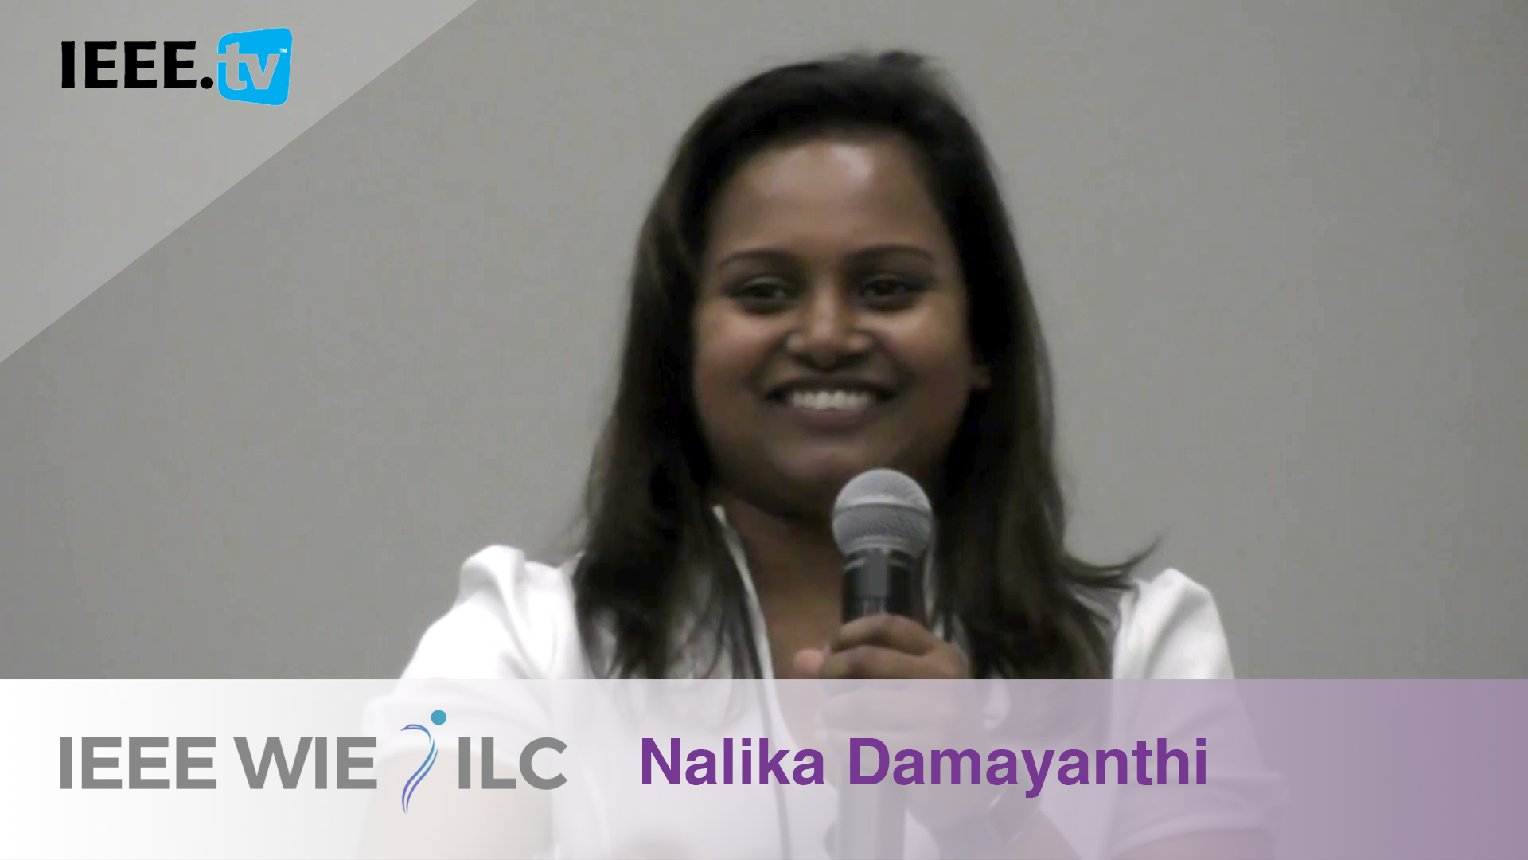 Nalika Damayanthi: Affinity Group of the Year Winner - IEEE WIE ILC Awards 2017